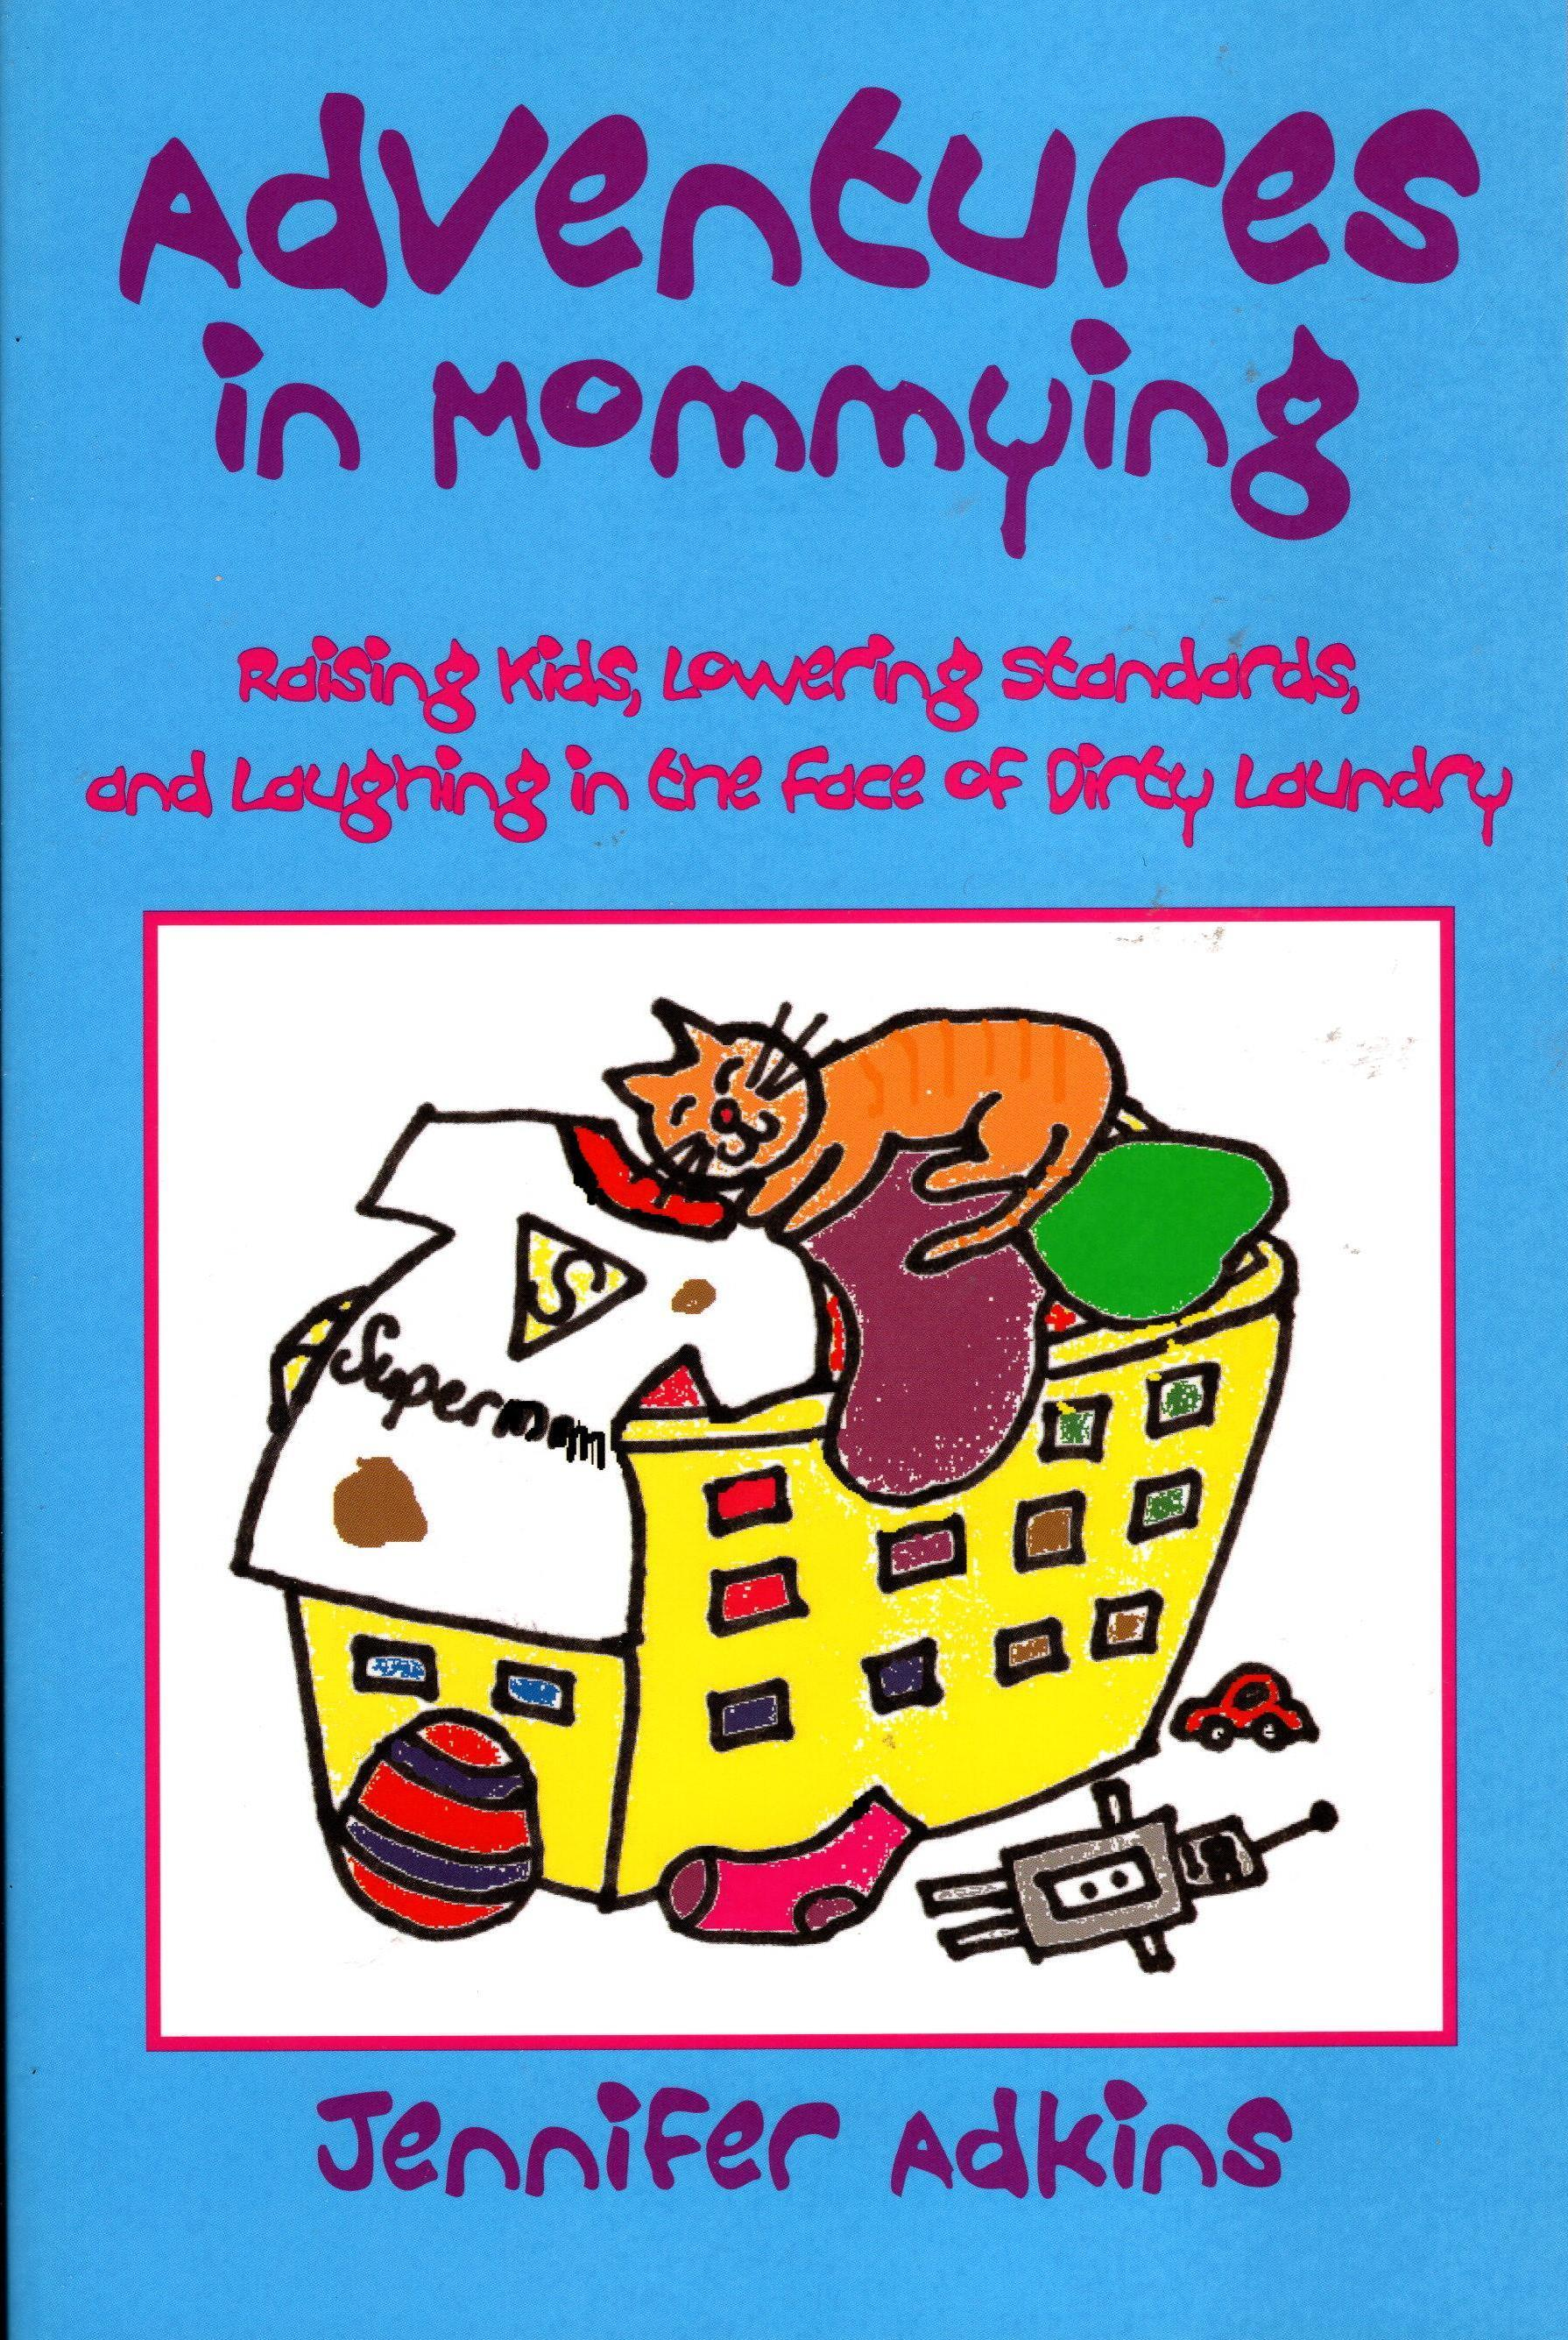 Image for ADVENTURES IN MOMMYING: RAISING KIDS, LOWERING STANDARDS, AND LAUGHING THE